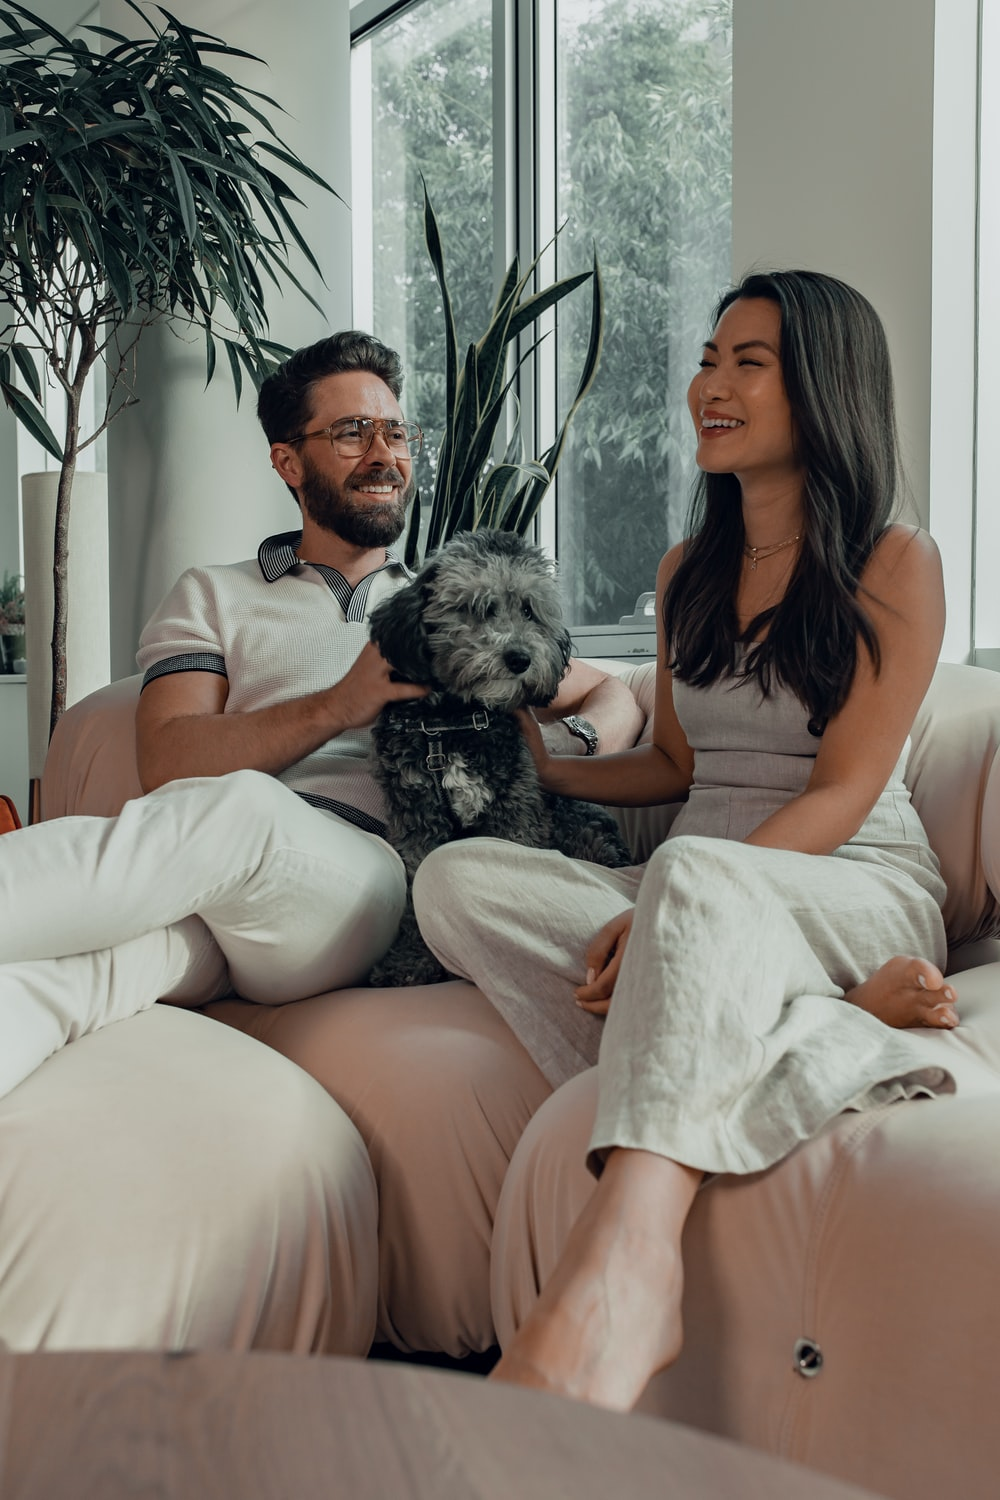 woman in black tank top sitting on couch beside man in white pants